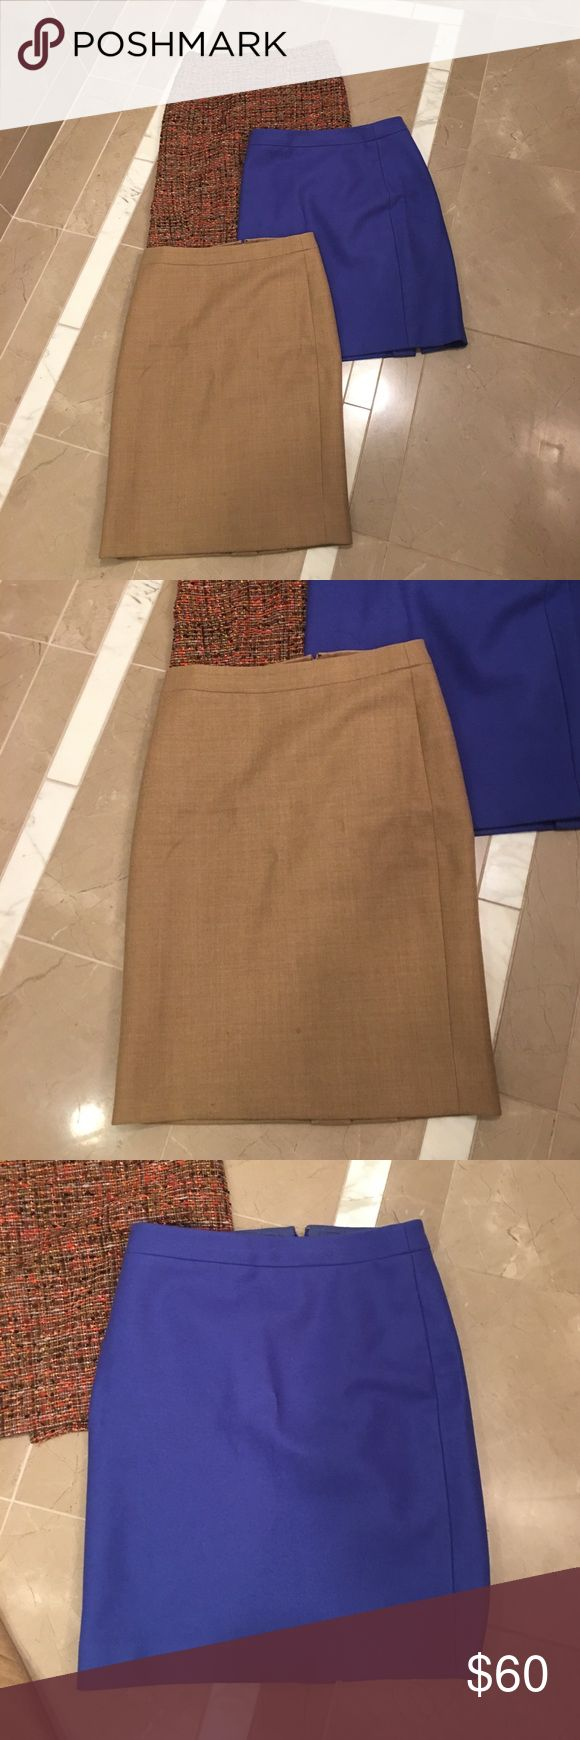 Bundle of 3 J. Crew/ J. Crew Factory pencil skirts Bundle of 3 pencil skirts in good to great condition. One skirt is J. Crew (tan one) and other ones are J. Crew Factory. Excellent deal given each skirt is also selling individually, please see individual listings on my closet for more details on each. J. Crew Skirts Pencil